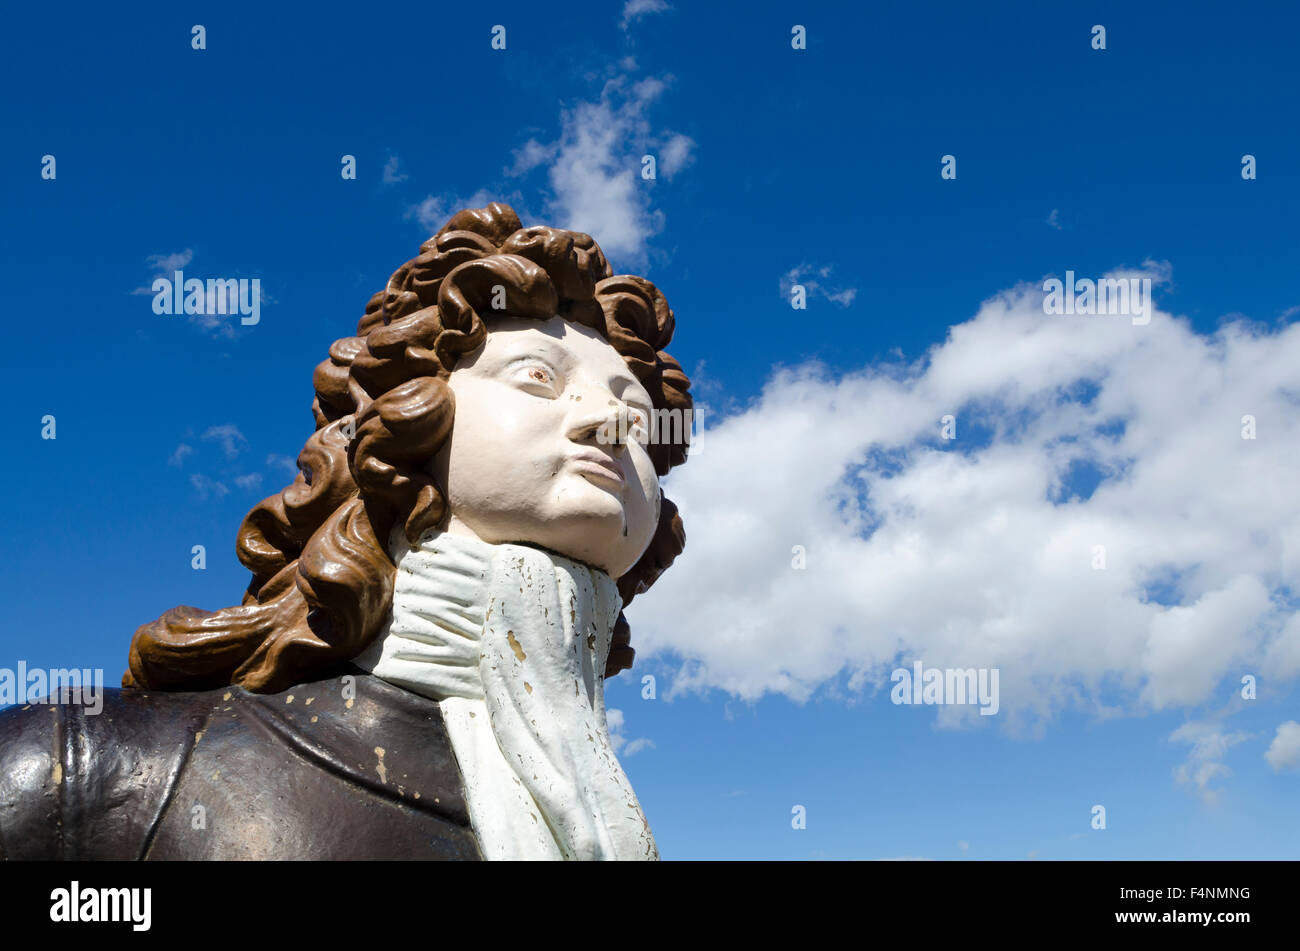 The figurehead from HMS Benbow at Portsmouth Historic Dockyard, Hampshire, England. - Stock Image